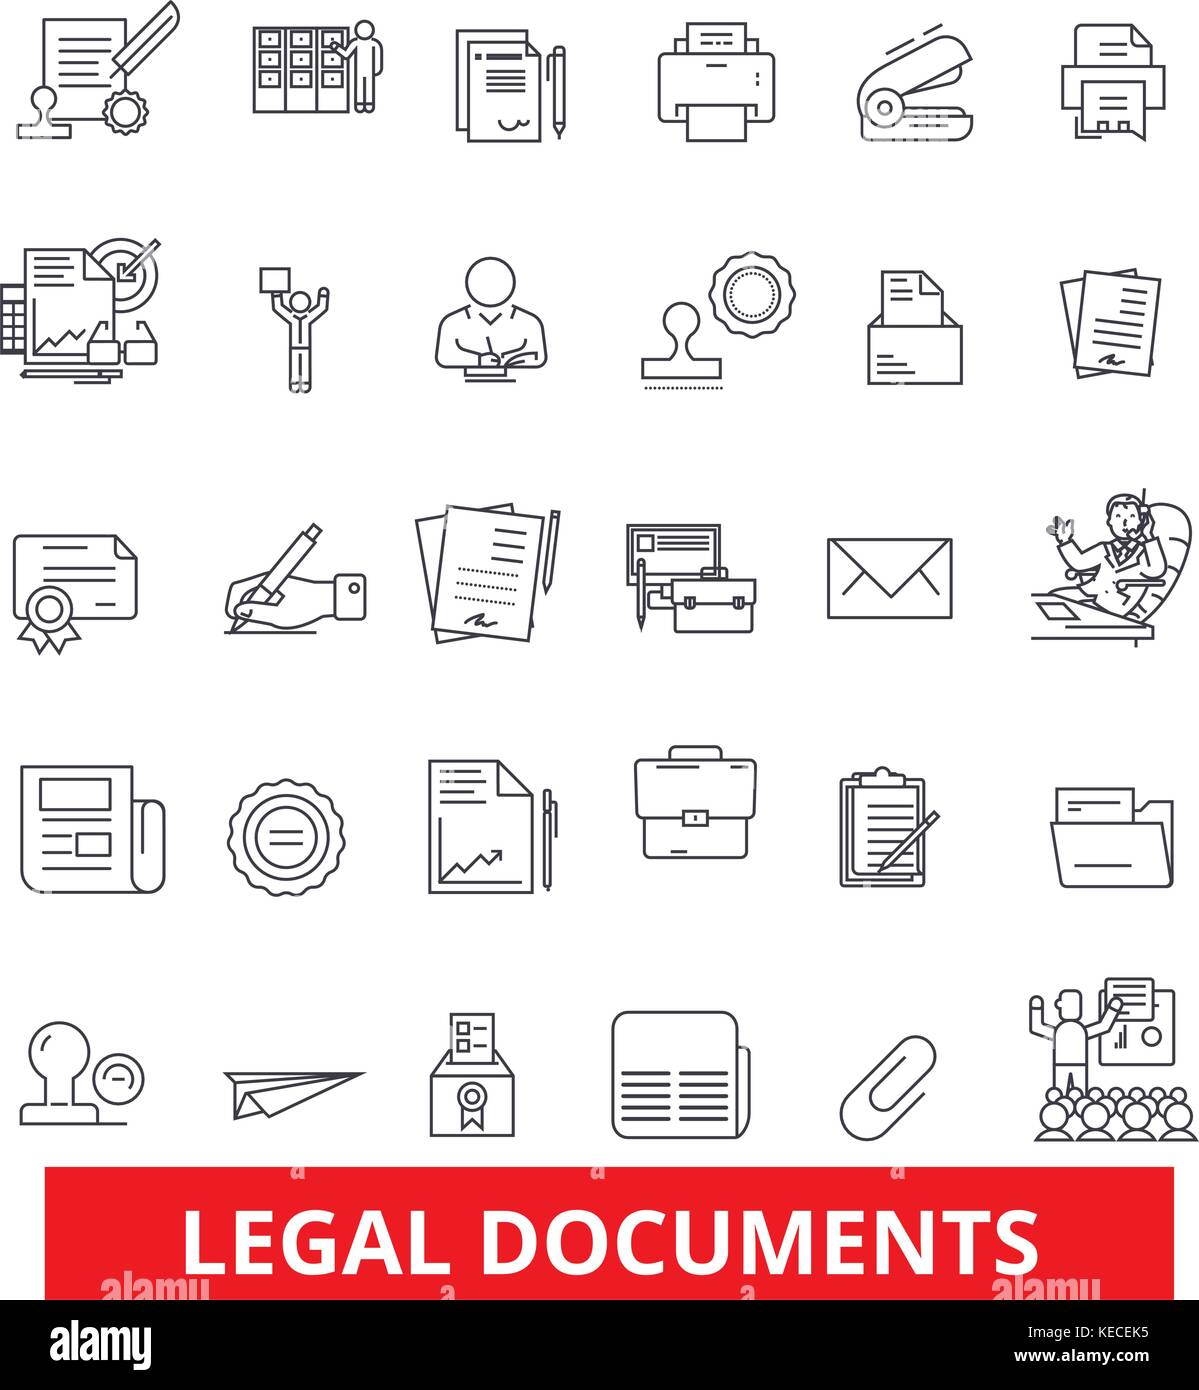 legal documents archive deed record papers legal files stock